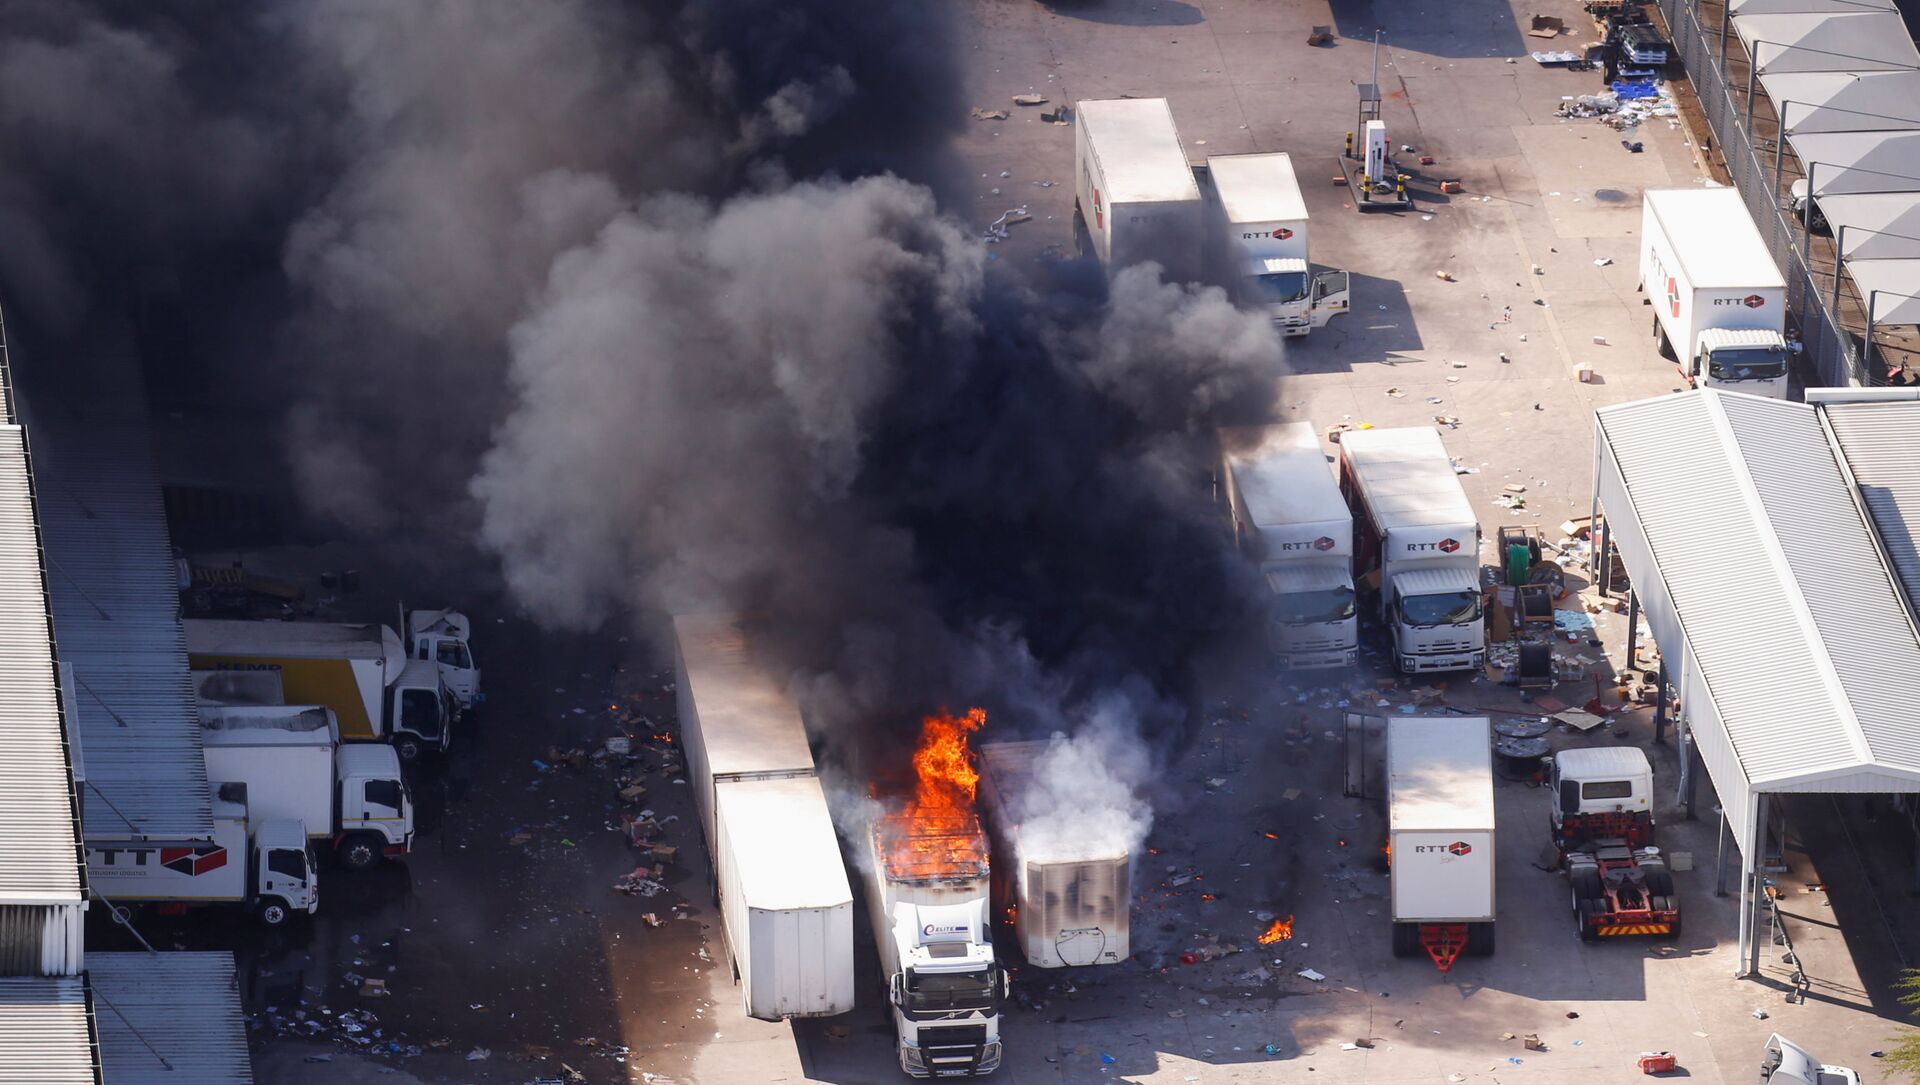 A general view of burning trucks after violence erupted following the jailing of former South African President Jacob Zuma, in Durban, South Africa, July 14, 2021 - Sputnik International, 1920, 29.07.2021